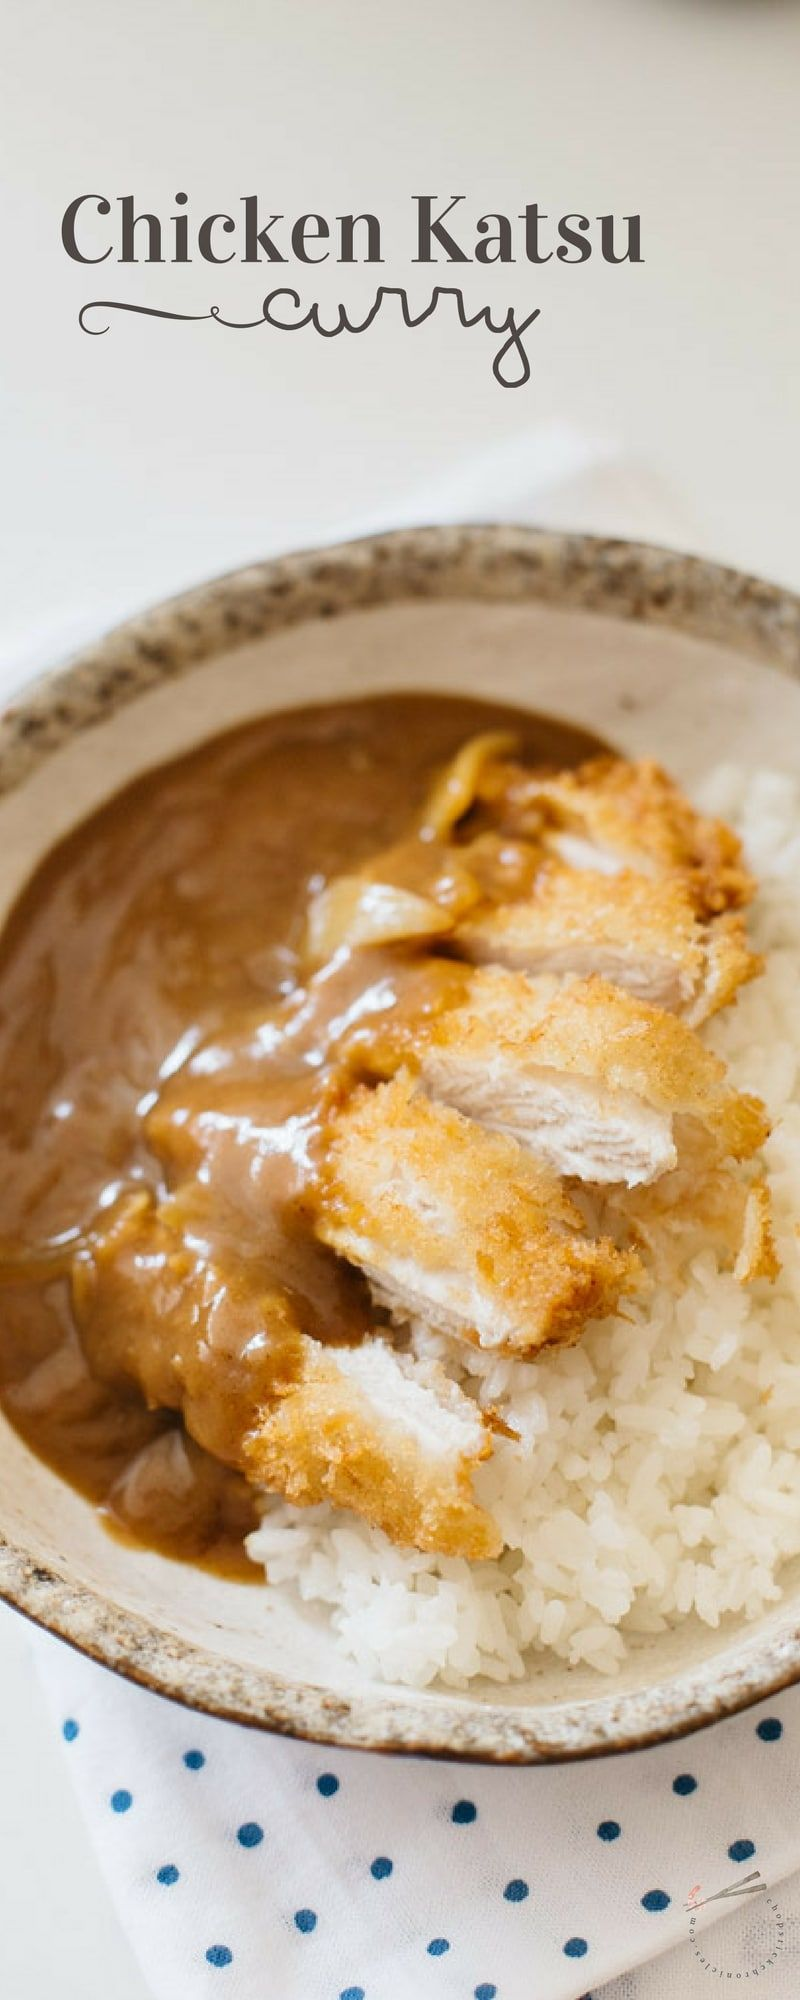 Chicken Katsu Curry Recipe Chicken Katsu Curry Recipes Easy Japanese Recipes